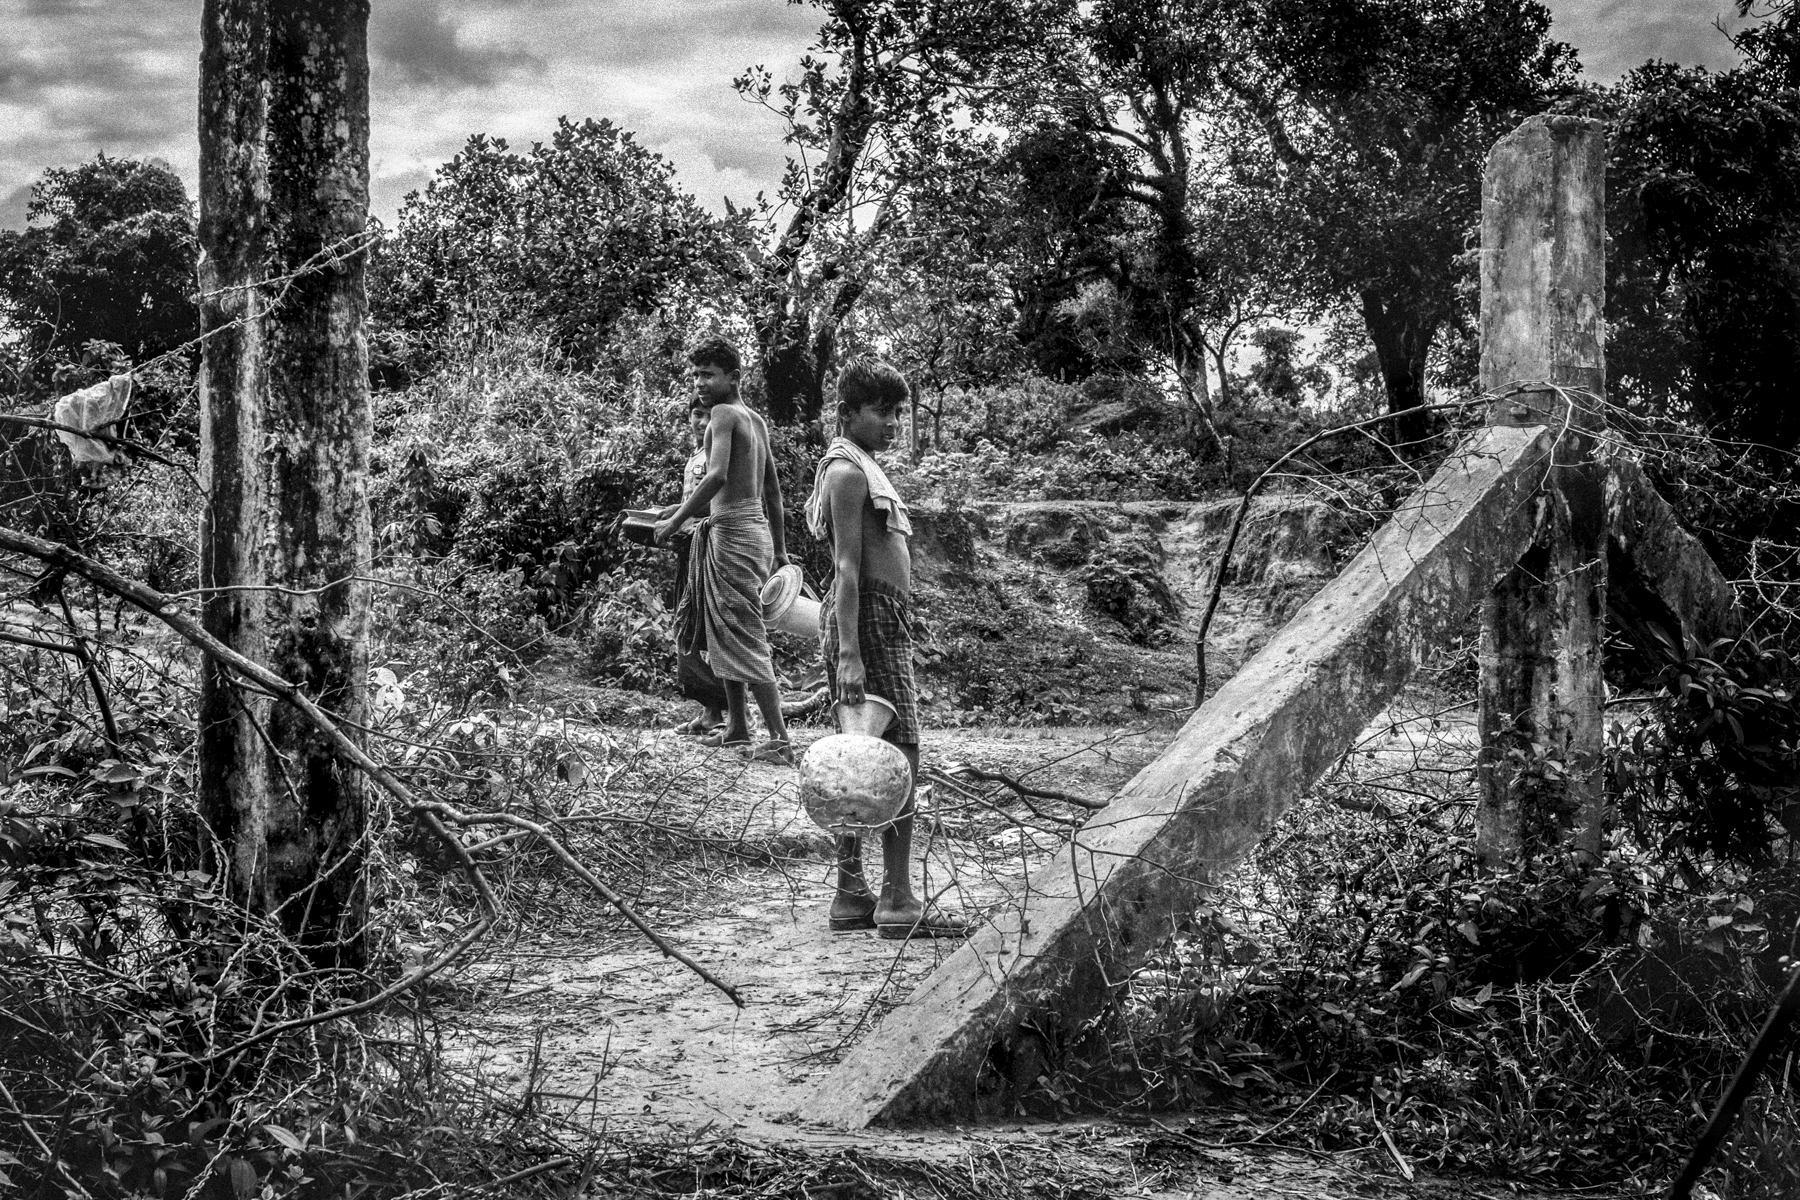 Rohingya boys walk through a hole in the border fence that separates Maungdaw, Myanmar from an area where they live in makeshift huts known as No Man's Land which lies between Myanmar and Bangladesh.